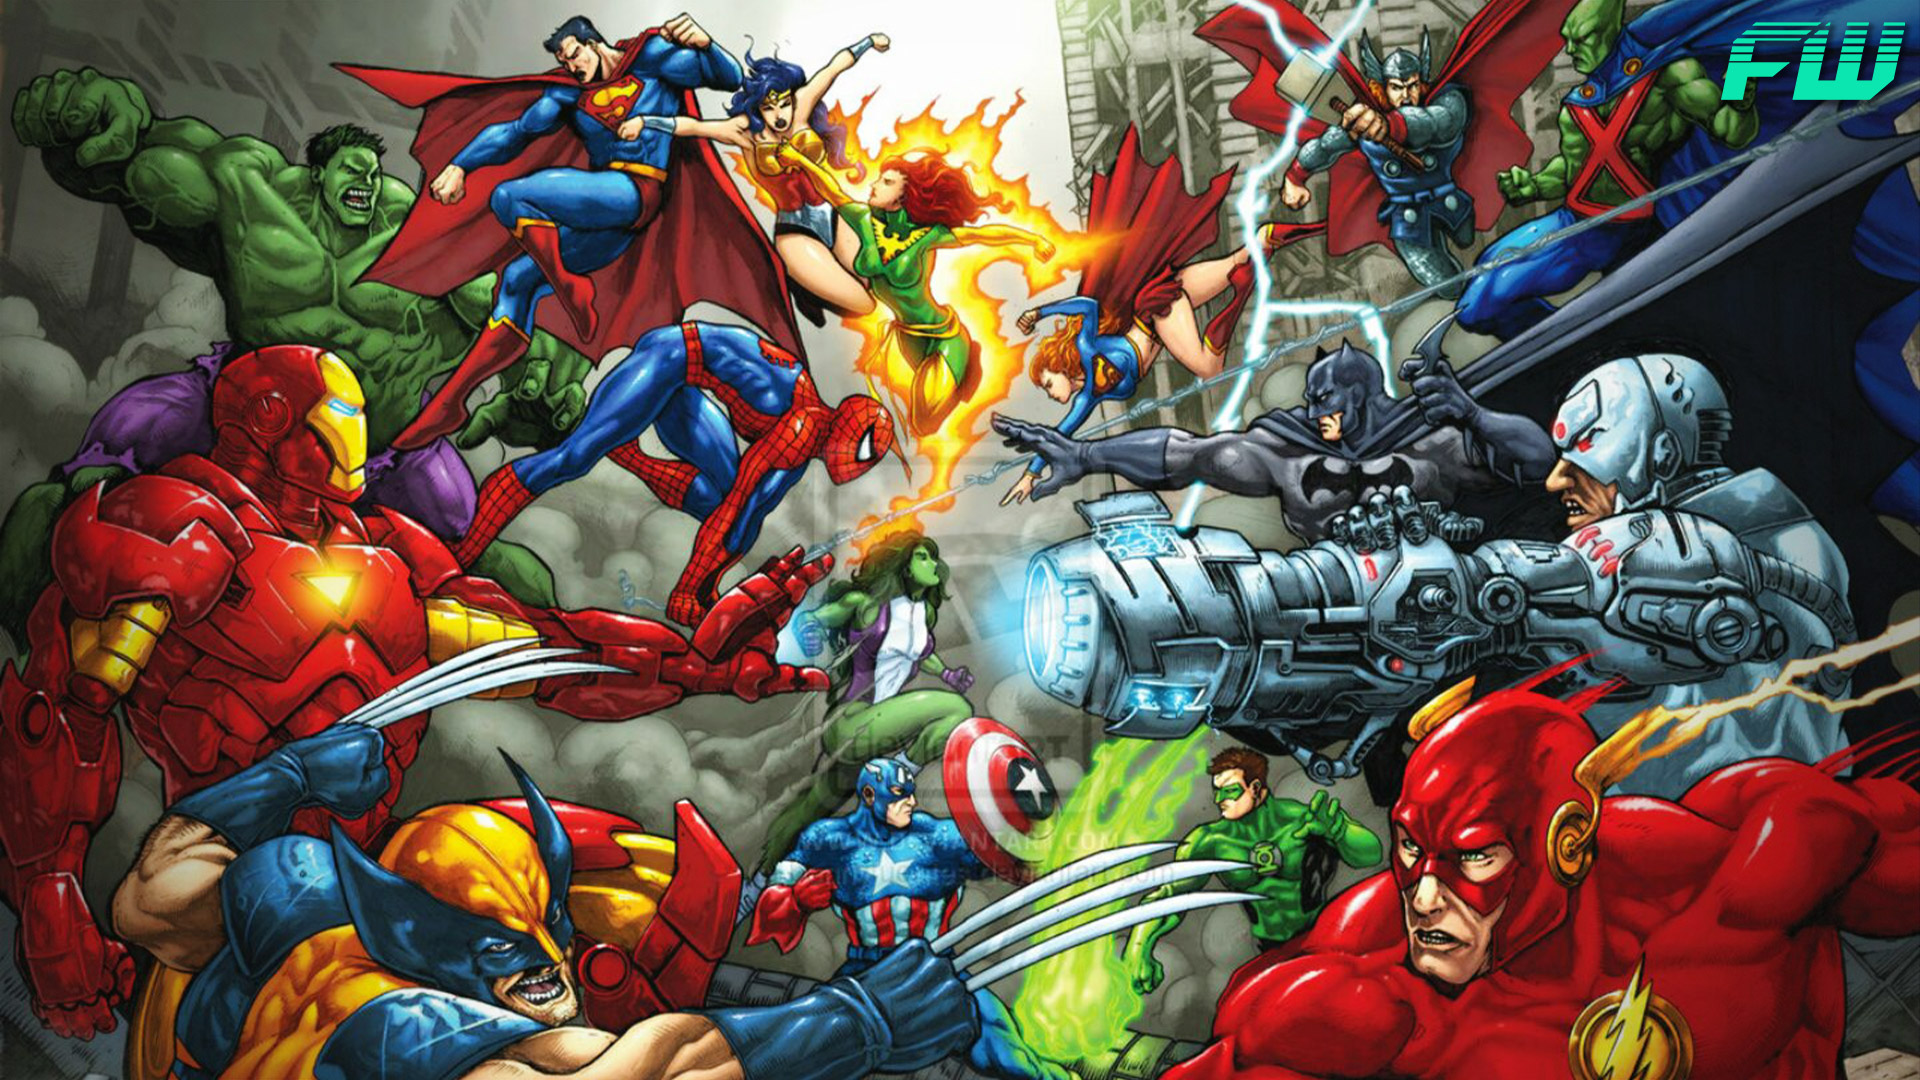 Team ups of Marvel and DC characters